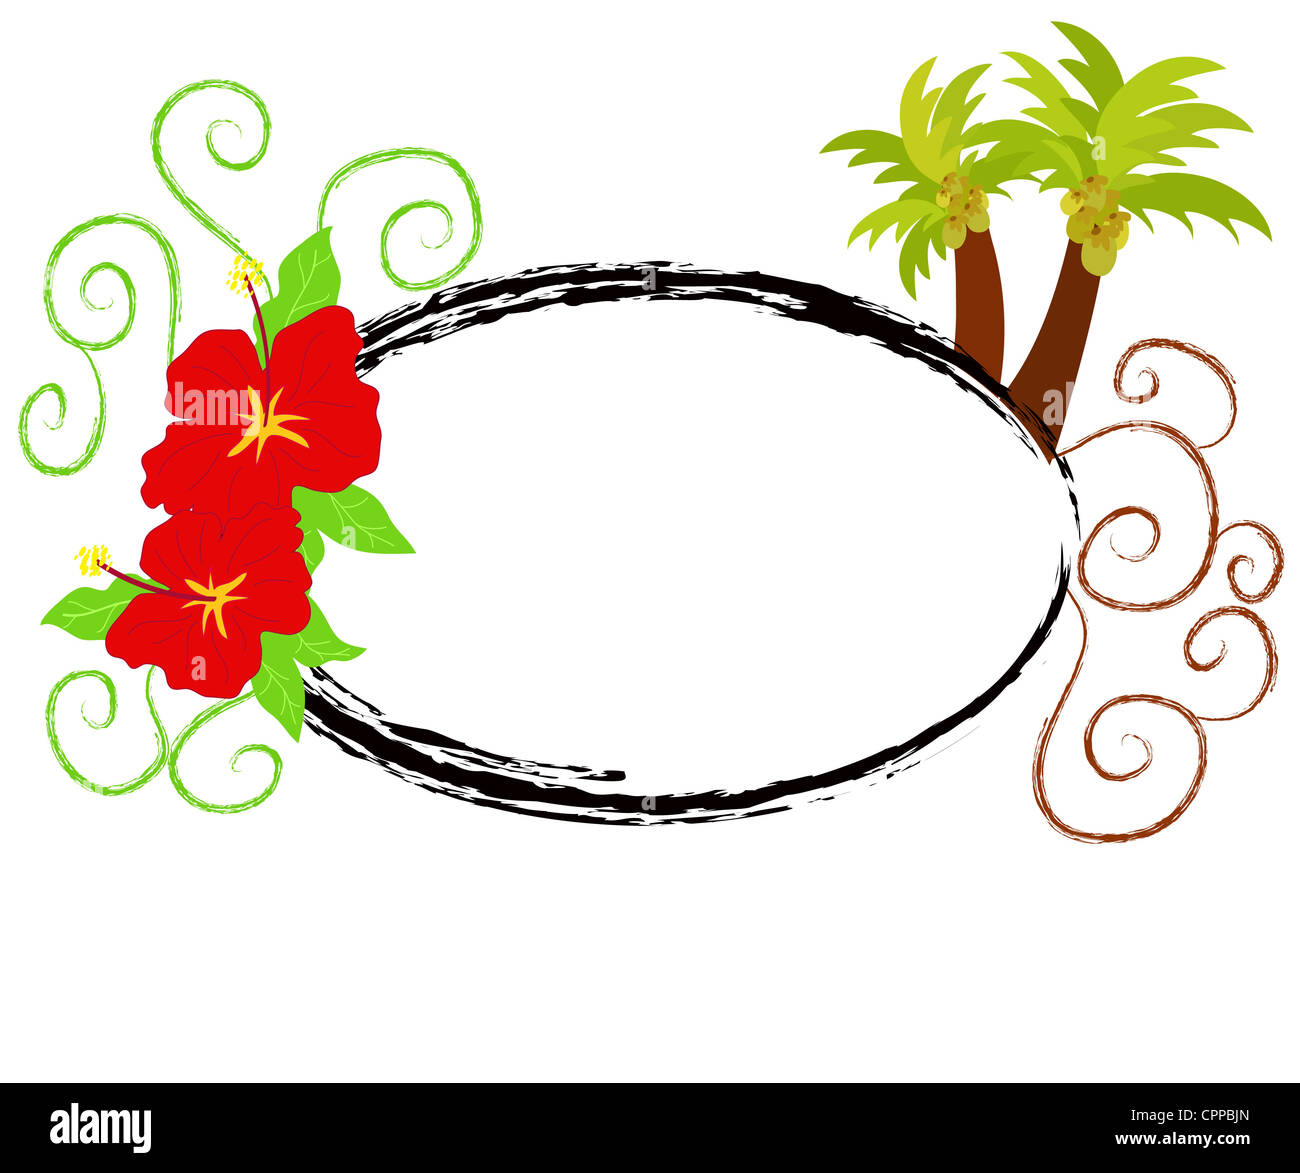 Tropical frame with hibiscus flowers and palm trees Stock Photo